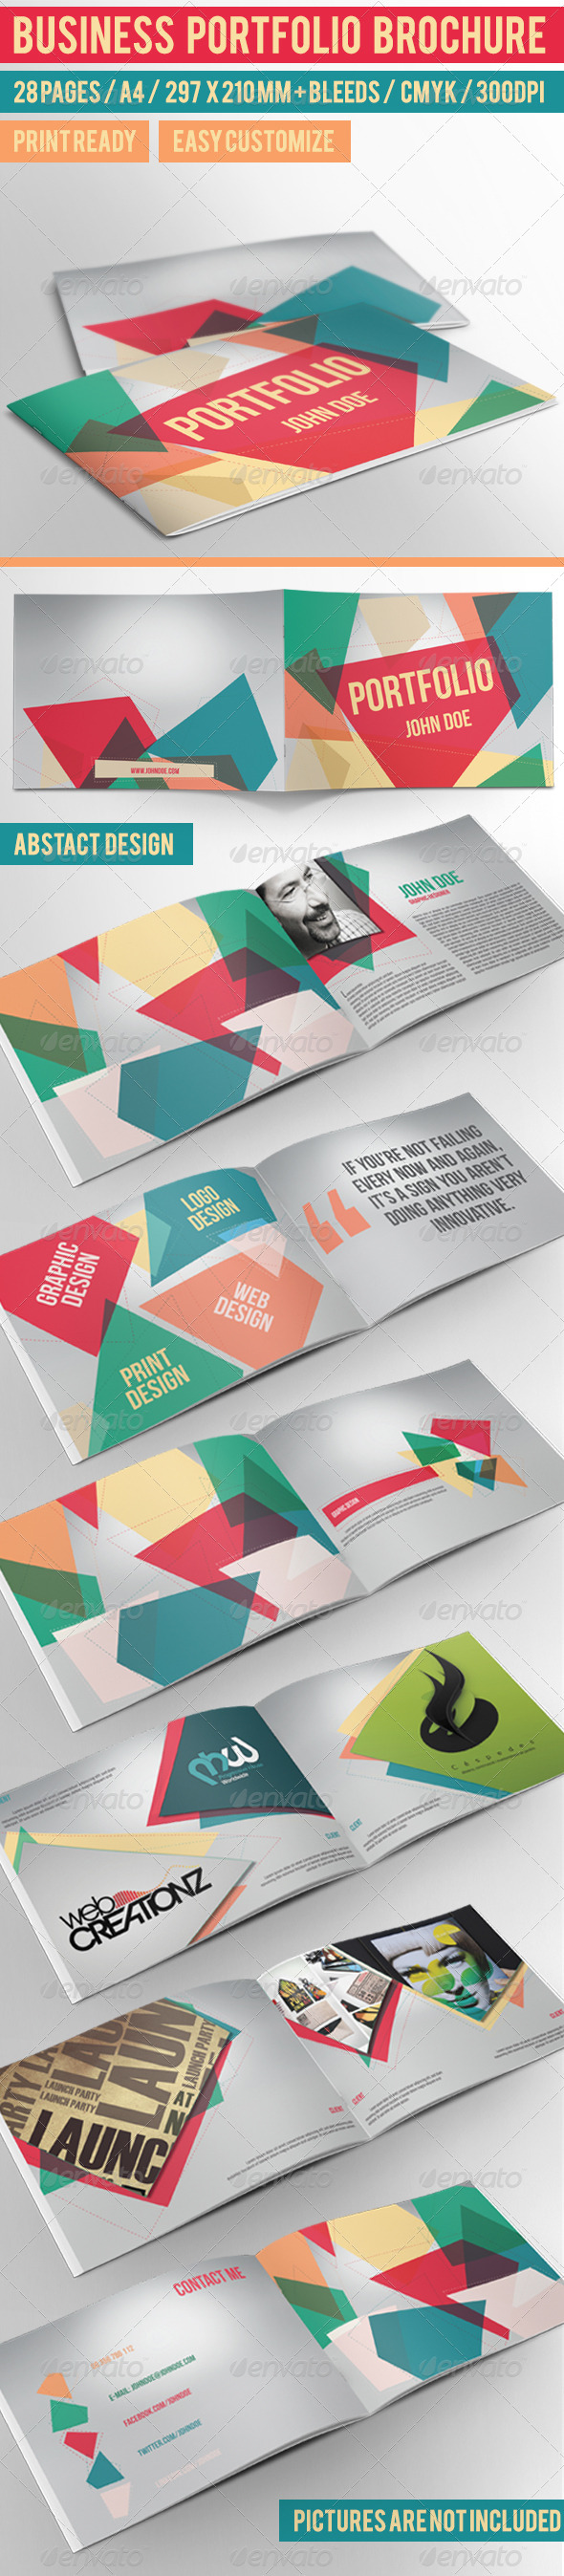 GraphicRiver Business Portfolio Brochure 4555832